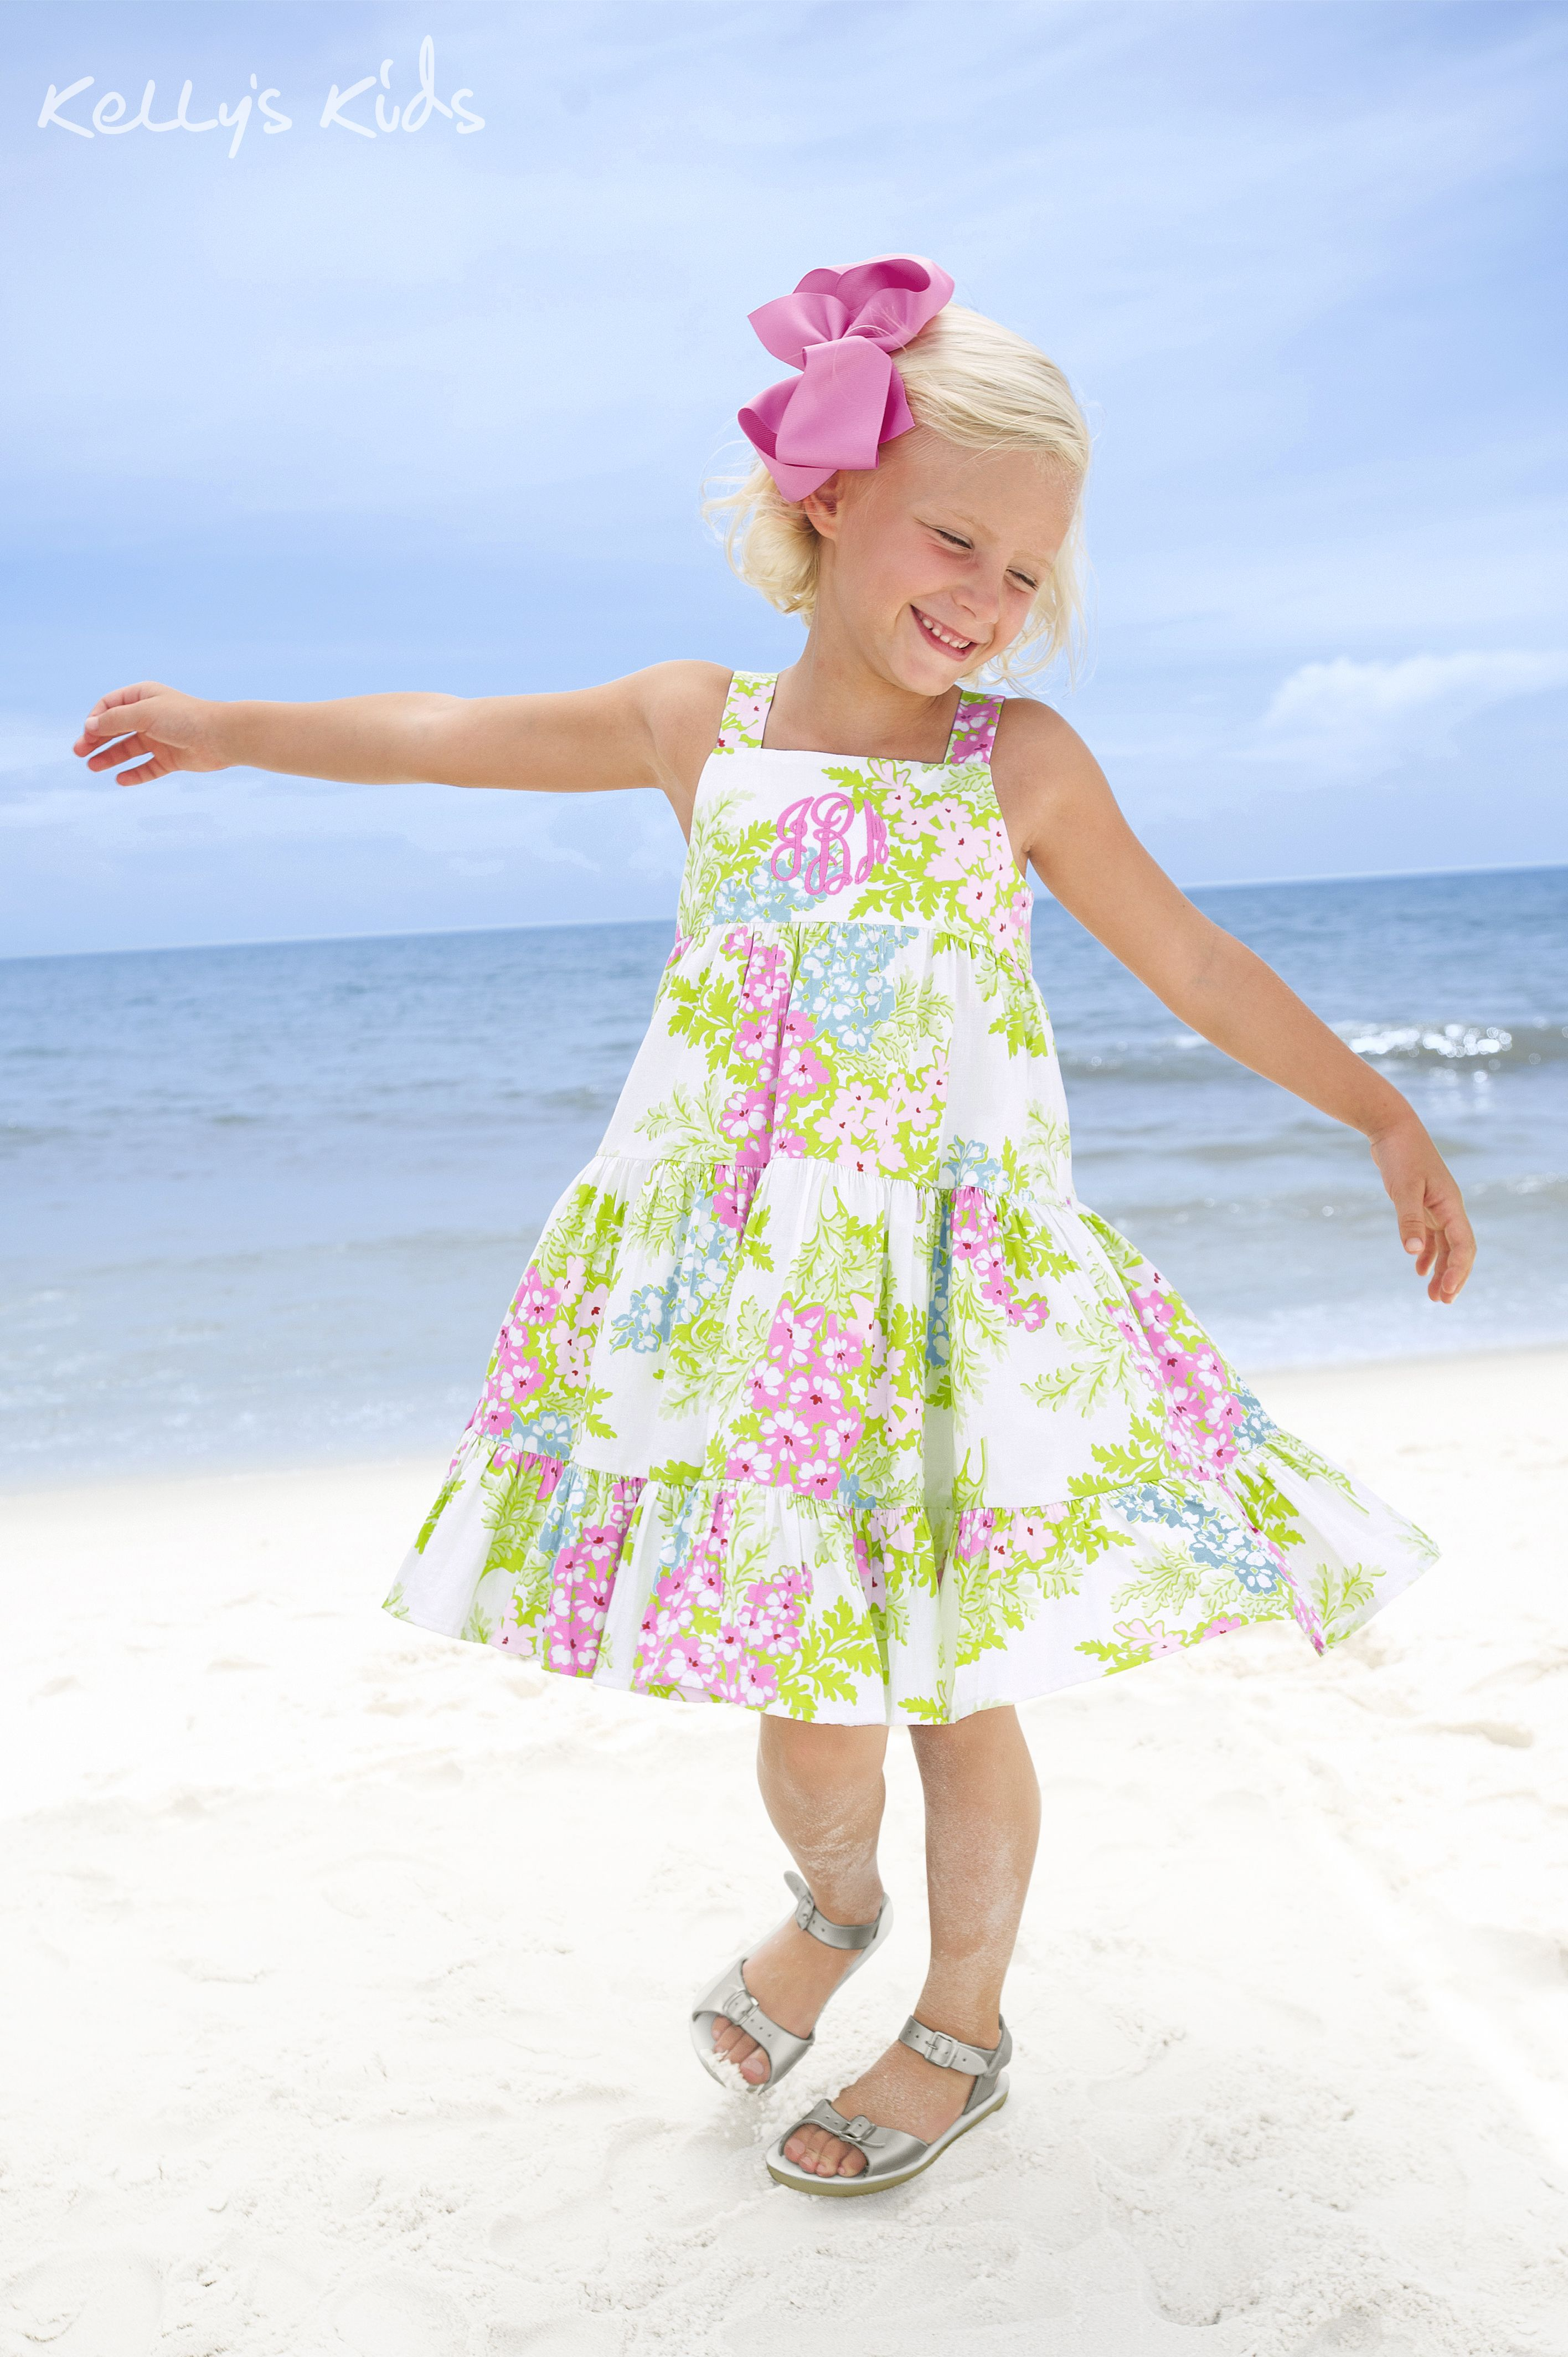 This dress was made for twirling! Made out of quality cotton poplin, this summer dress is as comfortable as it is beautiful. | $48 #spring #clothes #girls #summer #vacation